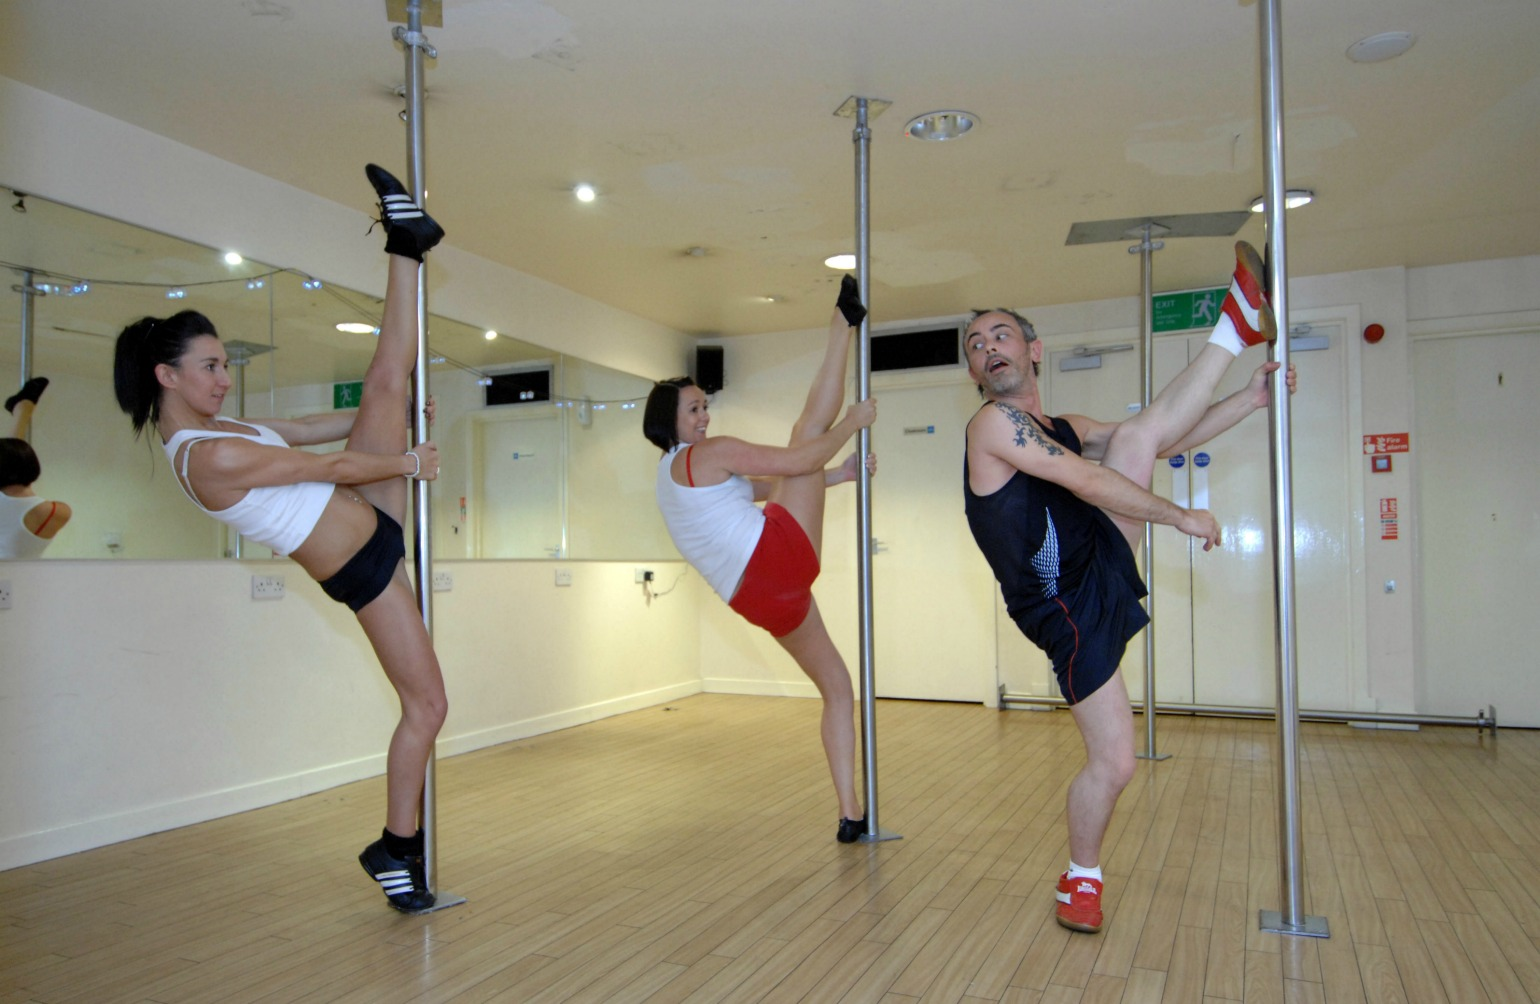 Super flot poledance i studio (Foto: All Over)